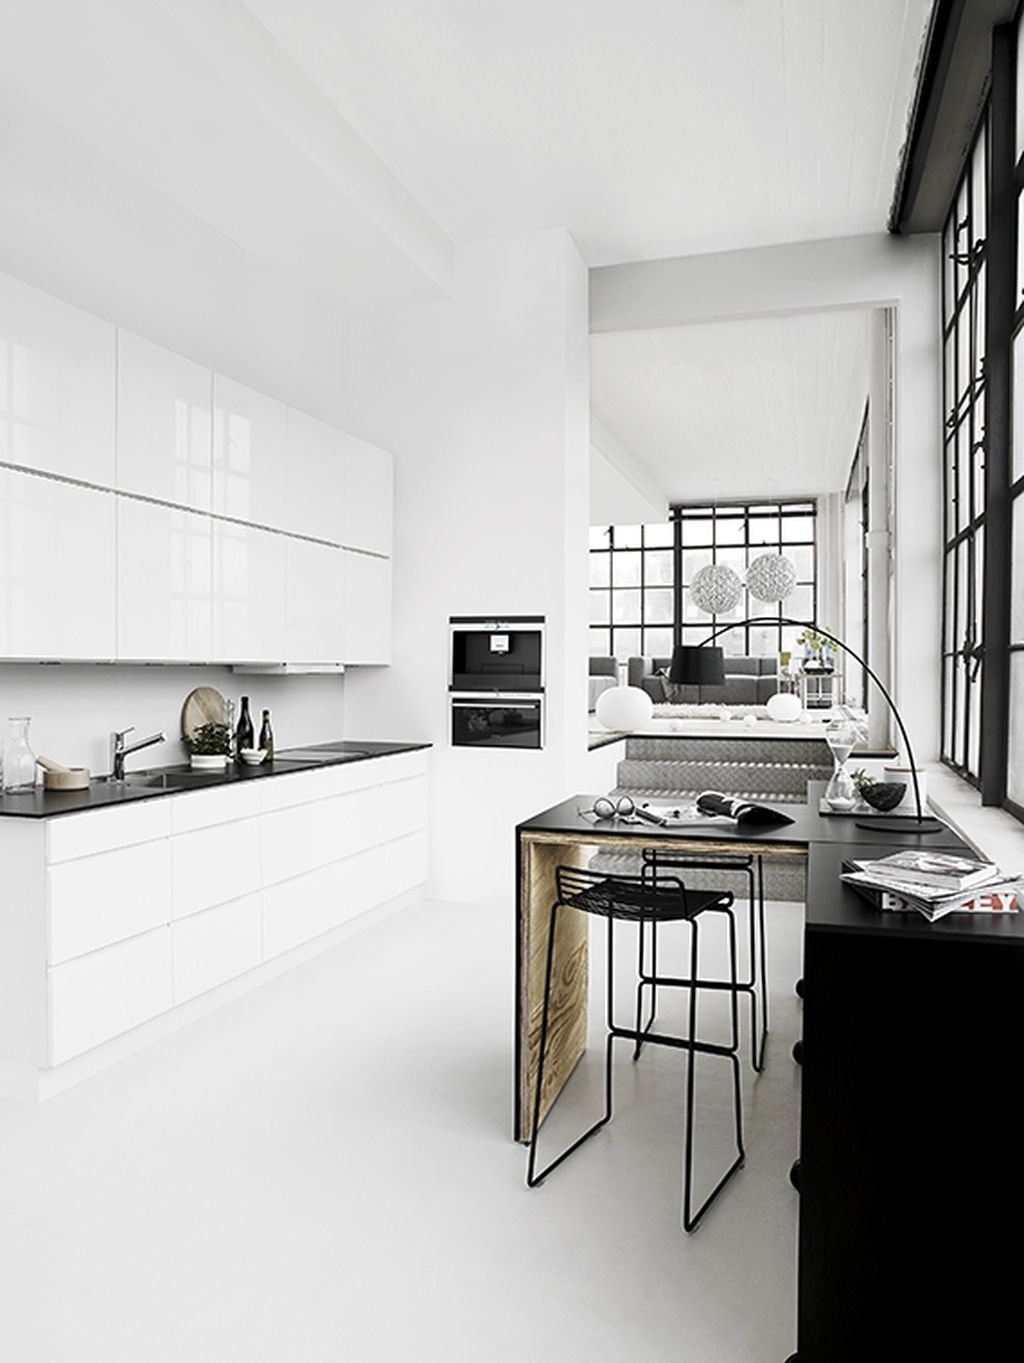 88 Amazing Black And White Kitchen Ideas You Will Love  Kitchens Classy Black And White Kitchens Designs Design Ideas